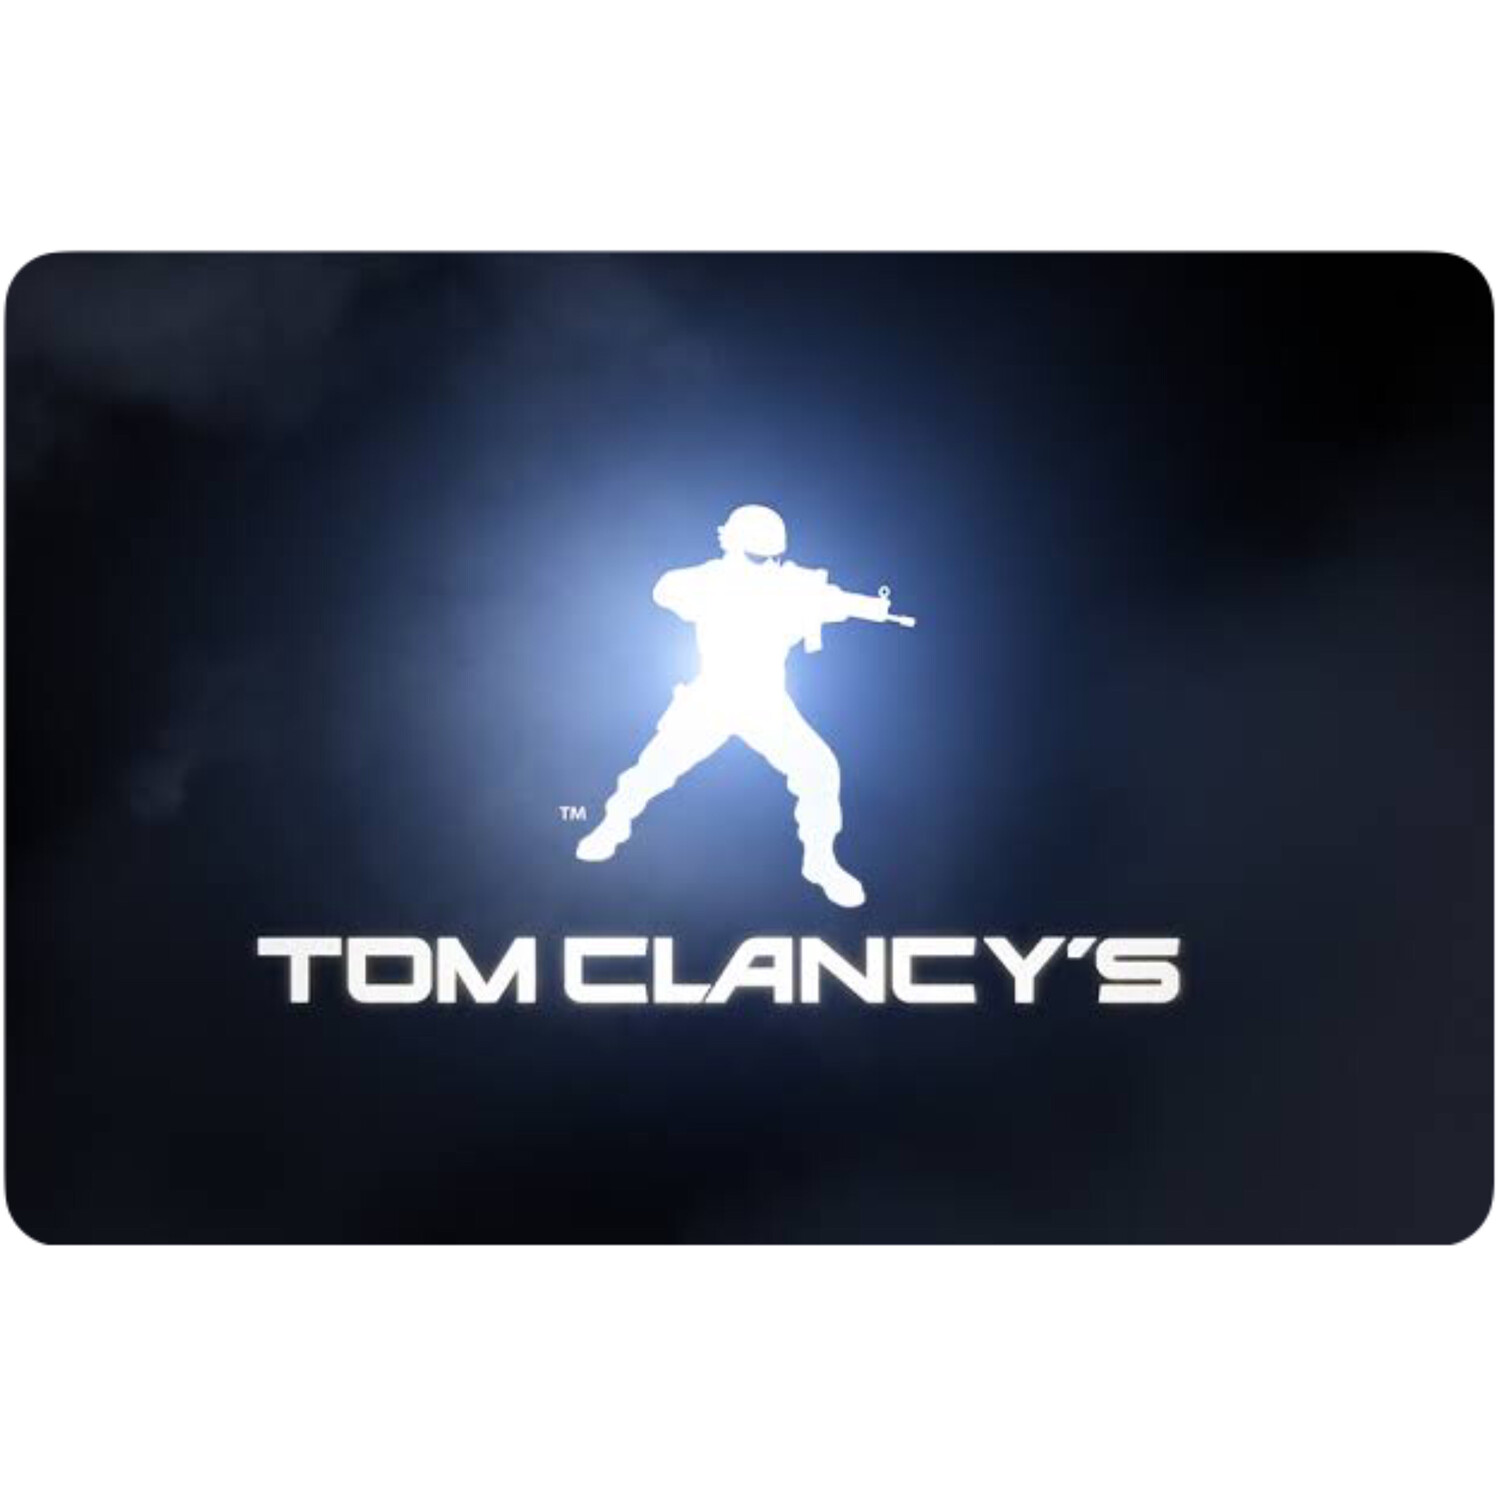 Tom Clancy Game Codes